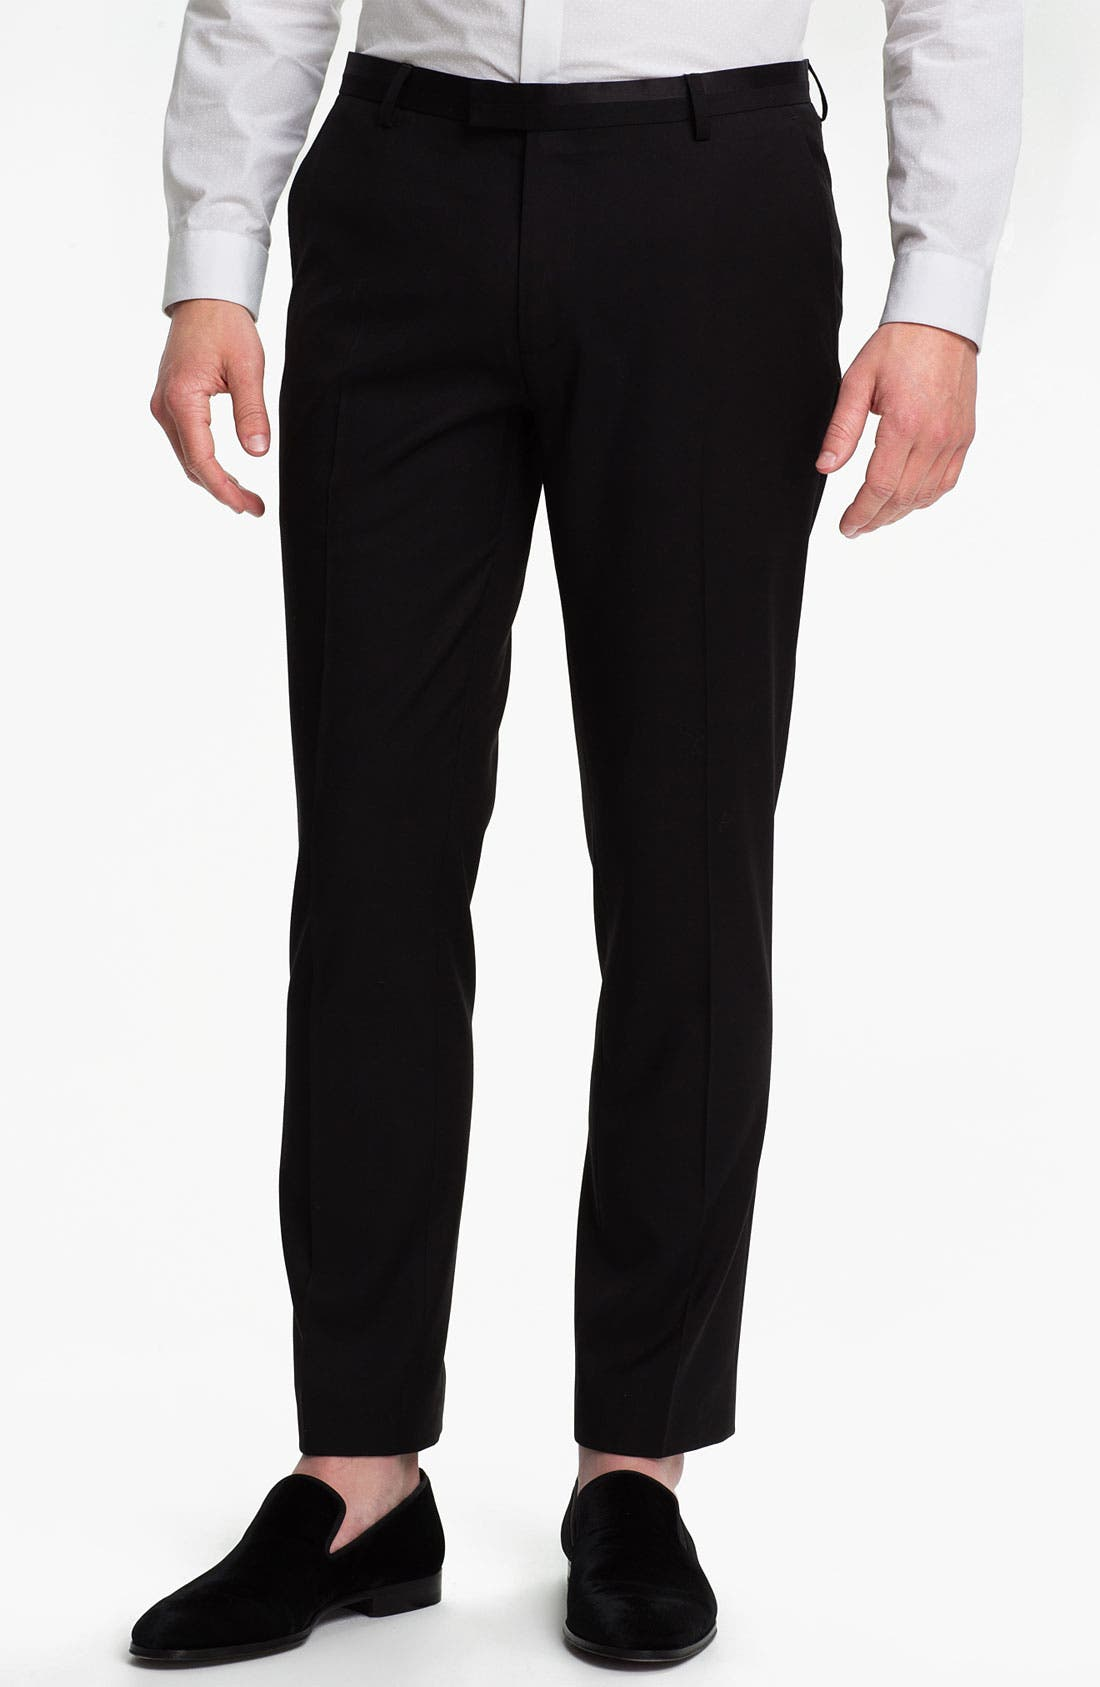 Alternate Image 1 Selected - Topman Black Satin Trim Trousers